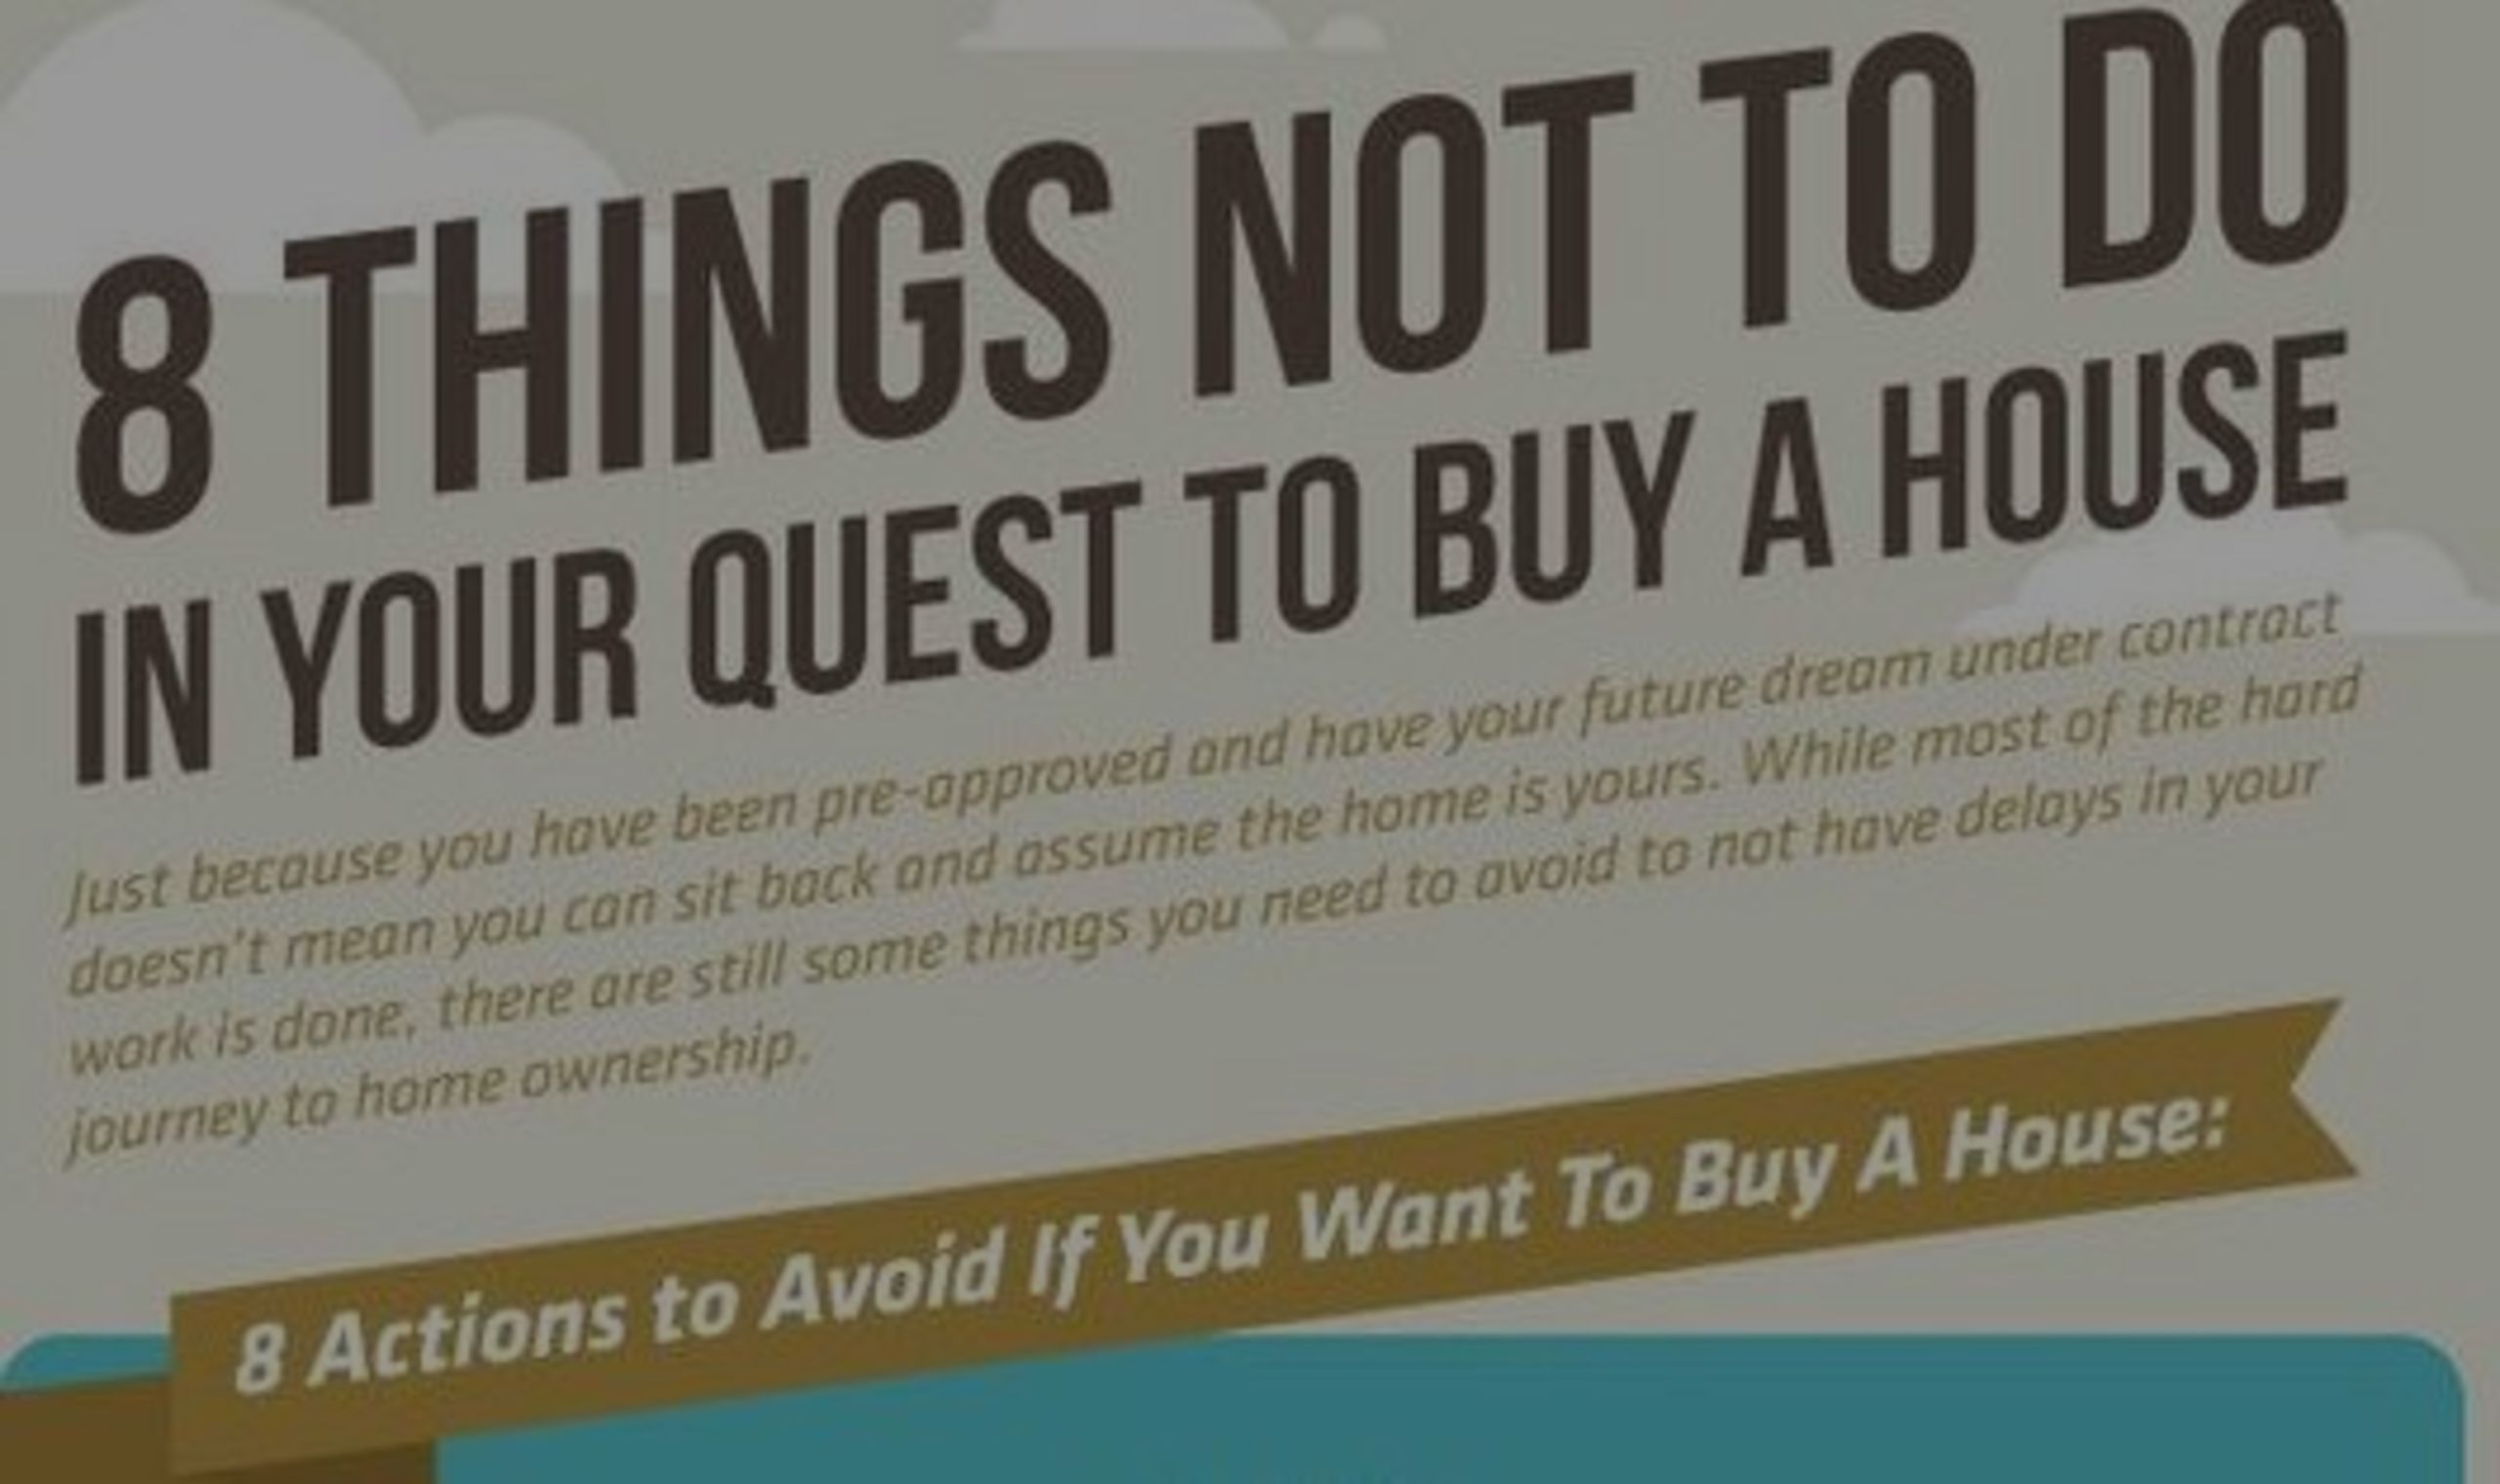 8 THINGS NOT TO DO IN YOUR QUEST TO BUYING A HOME